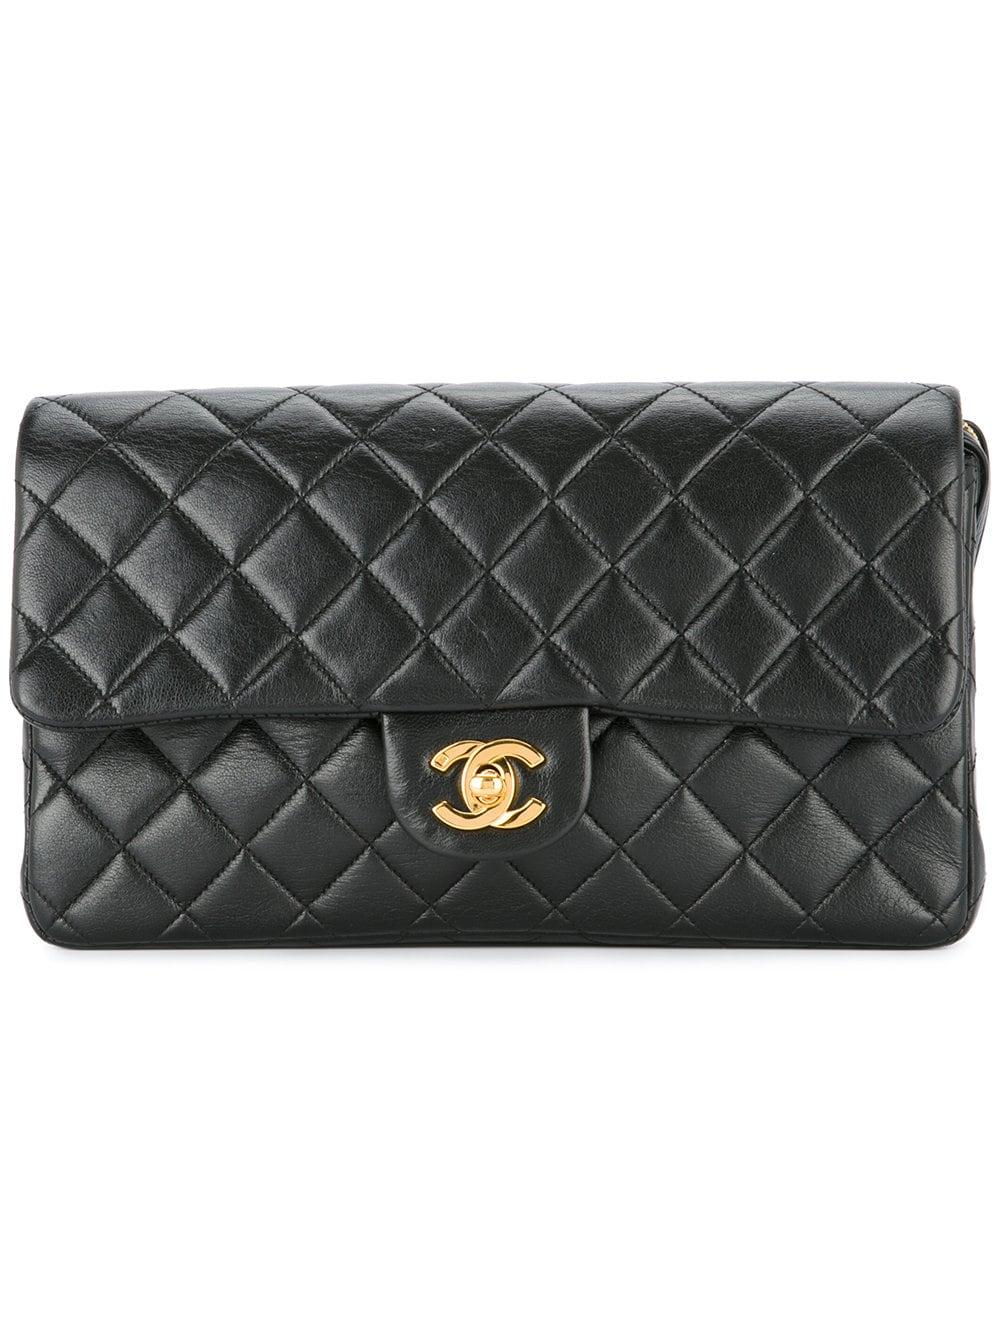 8b9839fc54c5 Chanel Vintage Quilted Backpack - Farfetch In Black | ModeSens